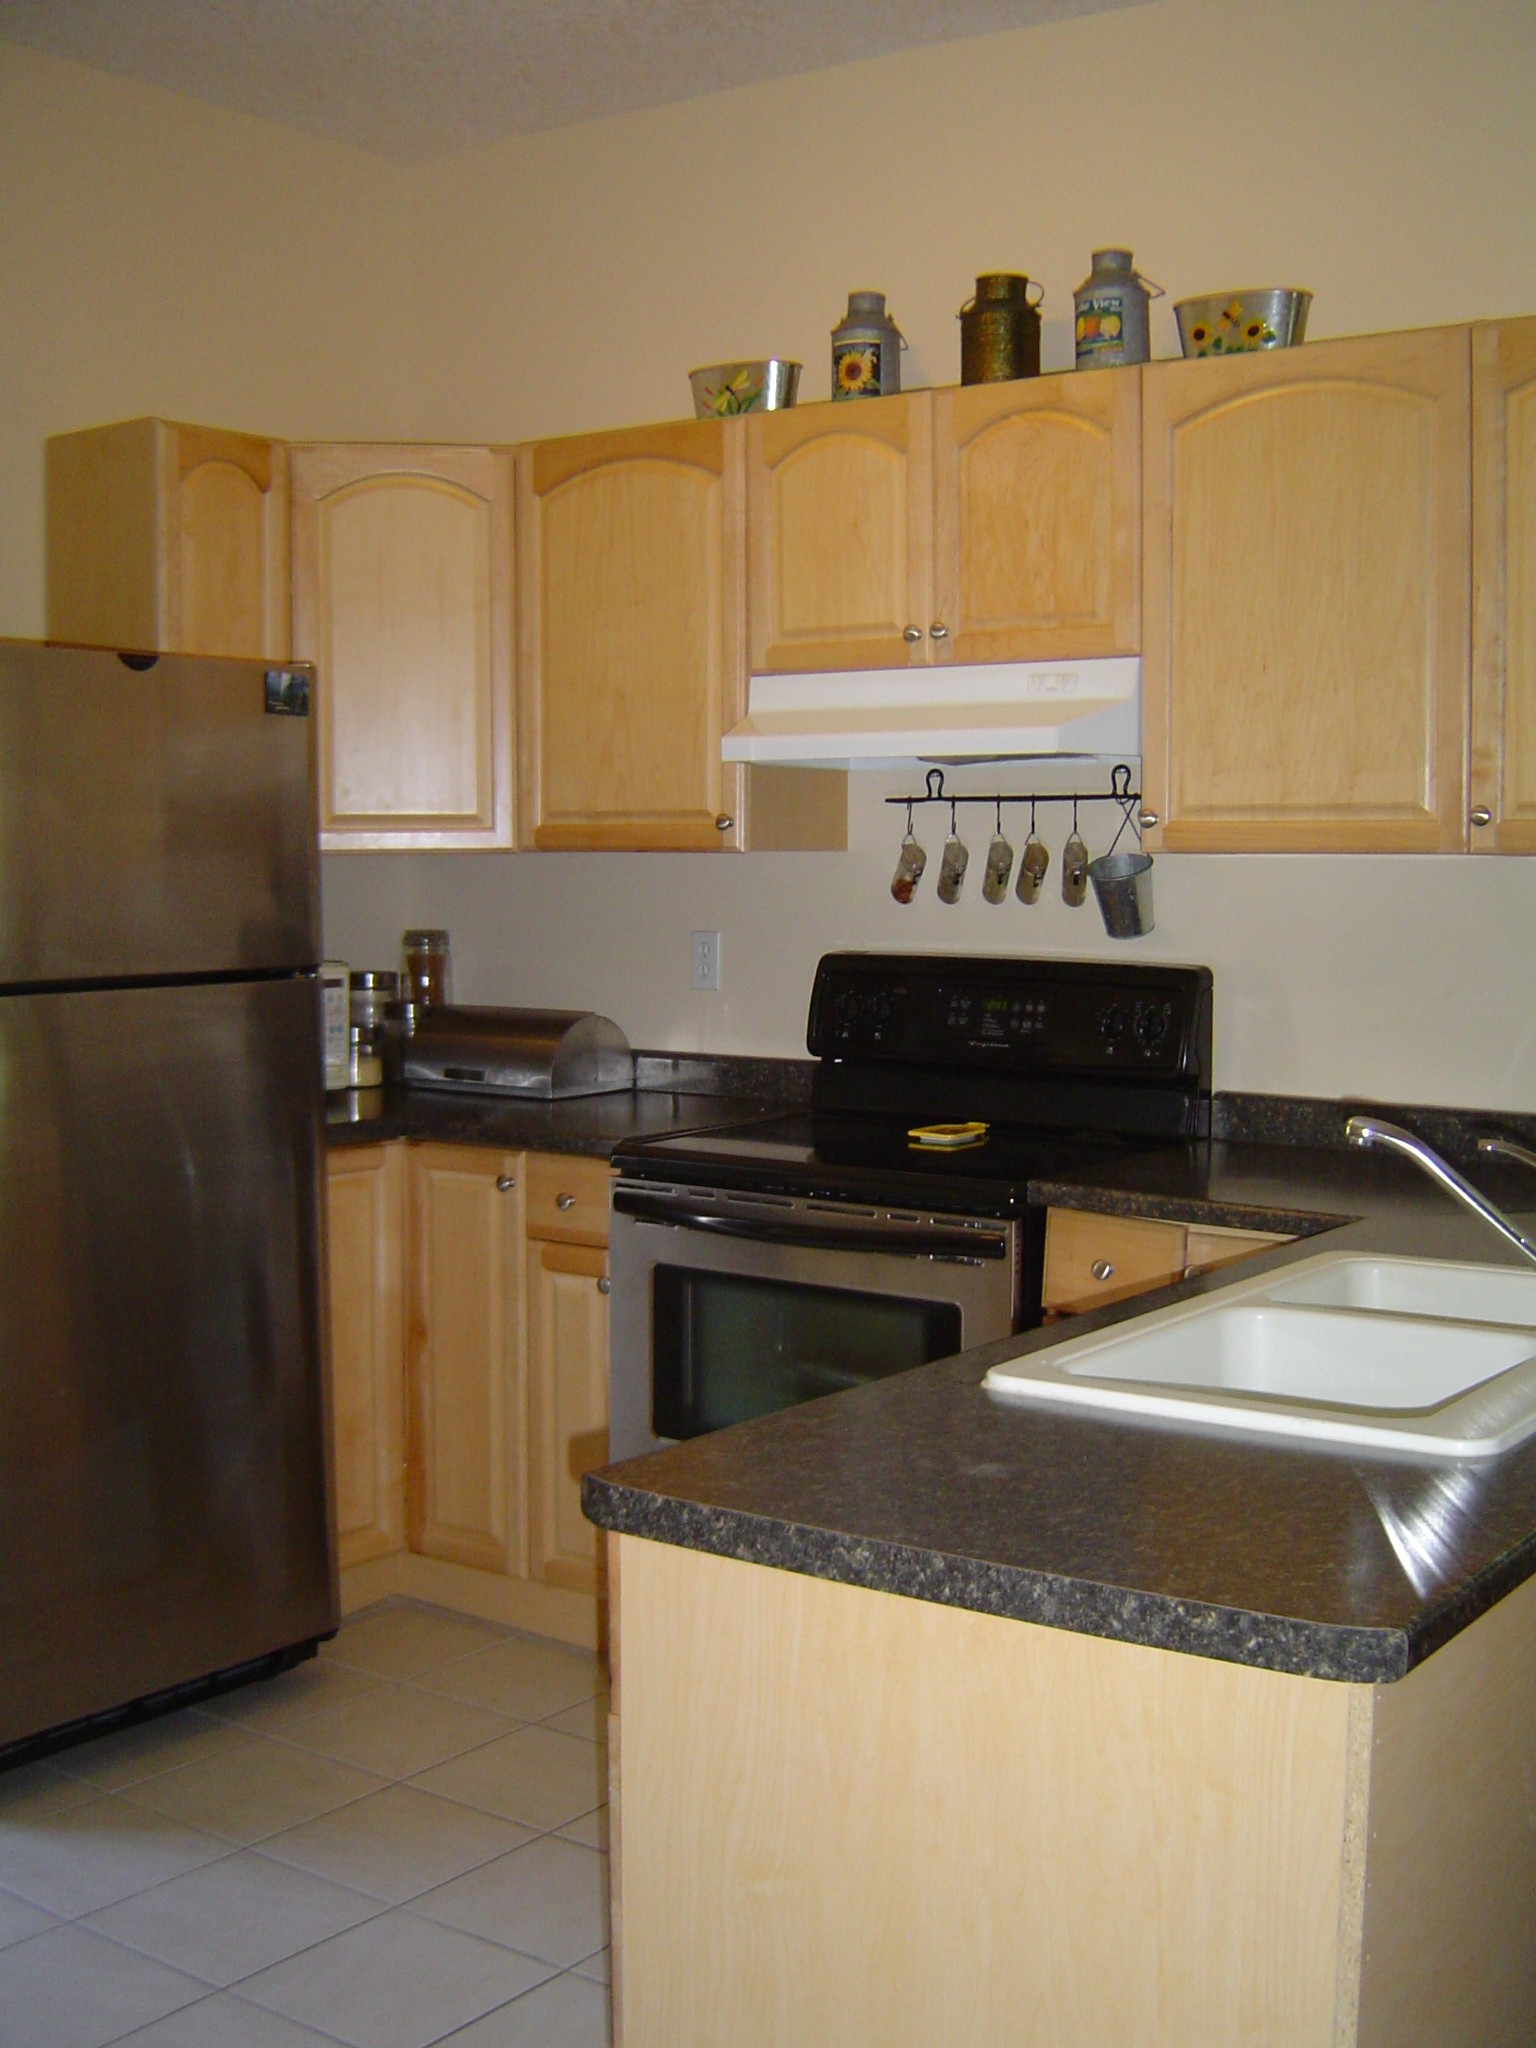 Newer kitchen located at the back of the house